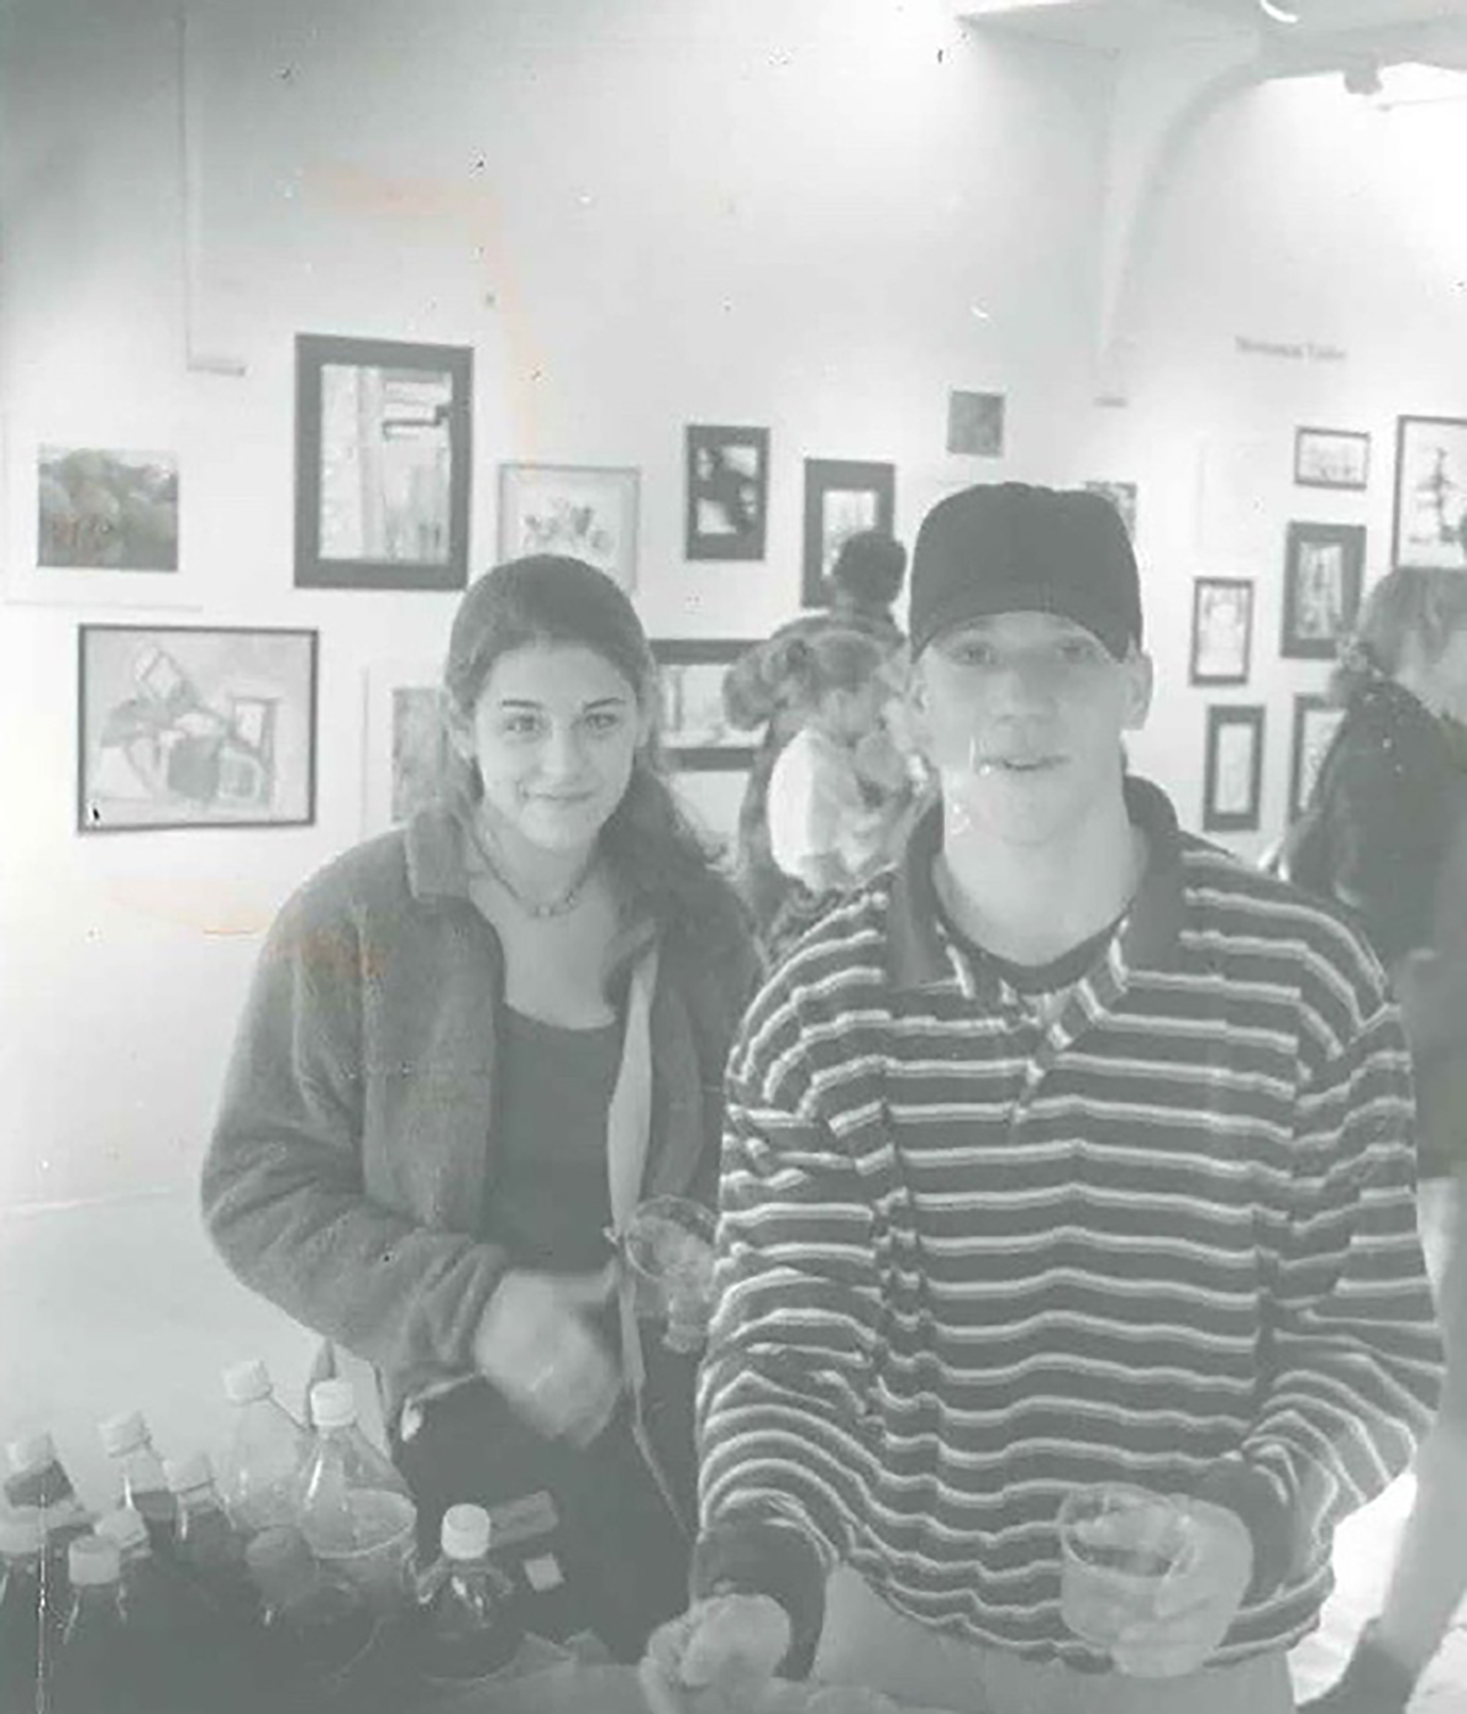 Kim at an art show in high school with an old friend